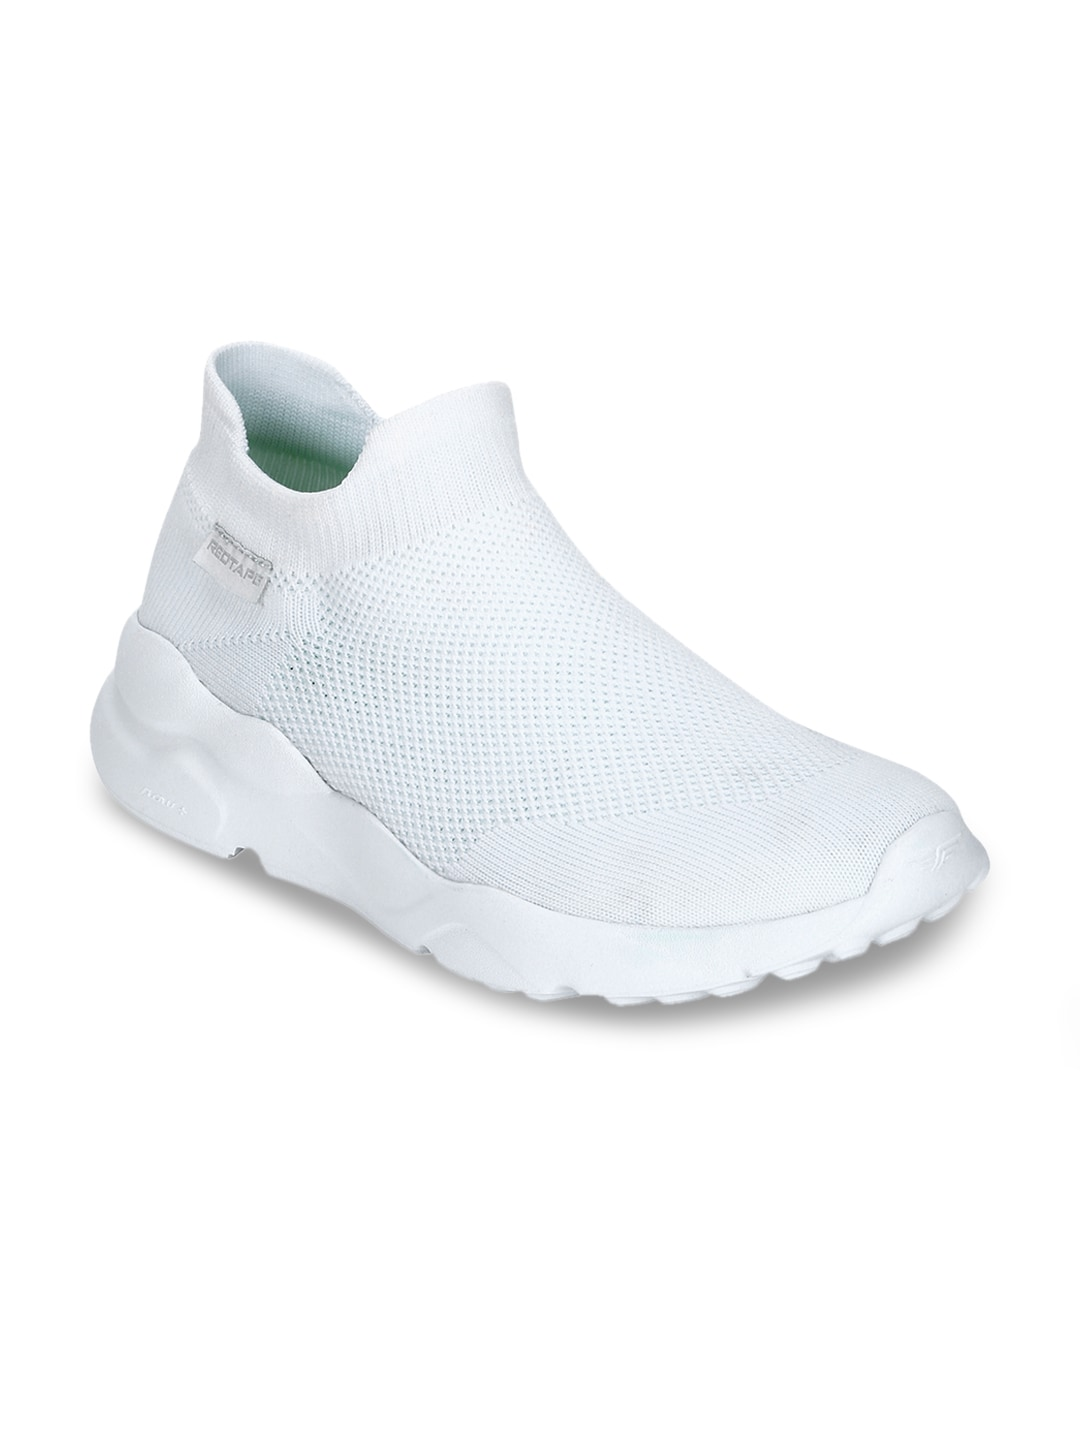 c1c14ed820d White Shoes - Buy White Shoes Online in India